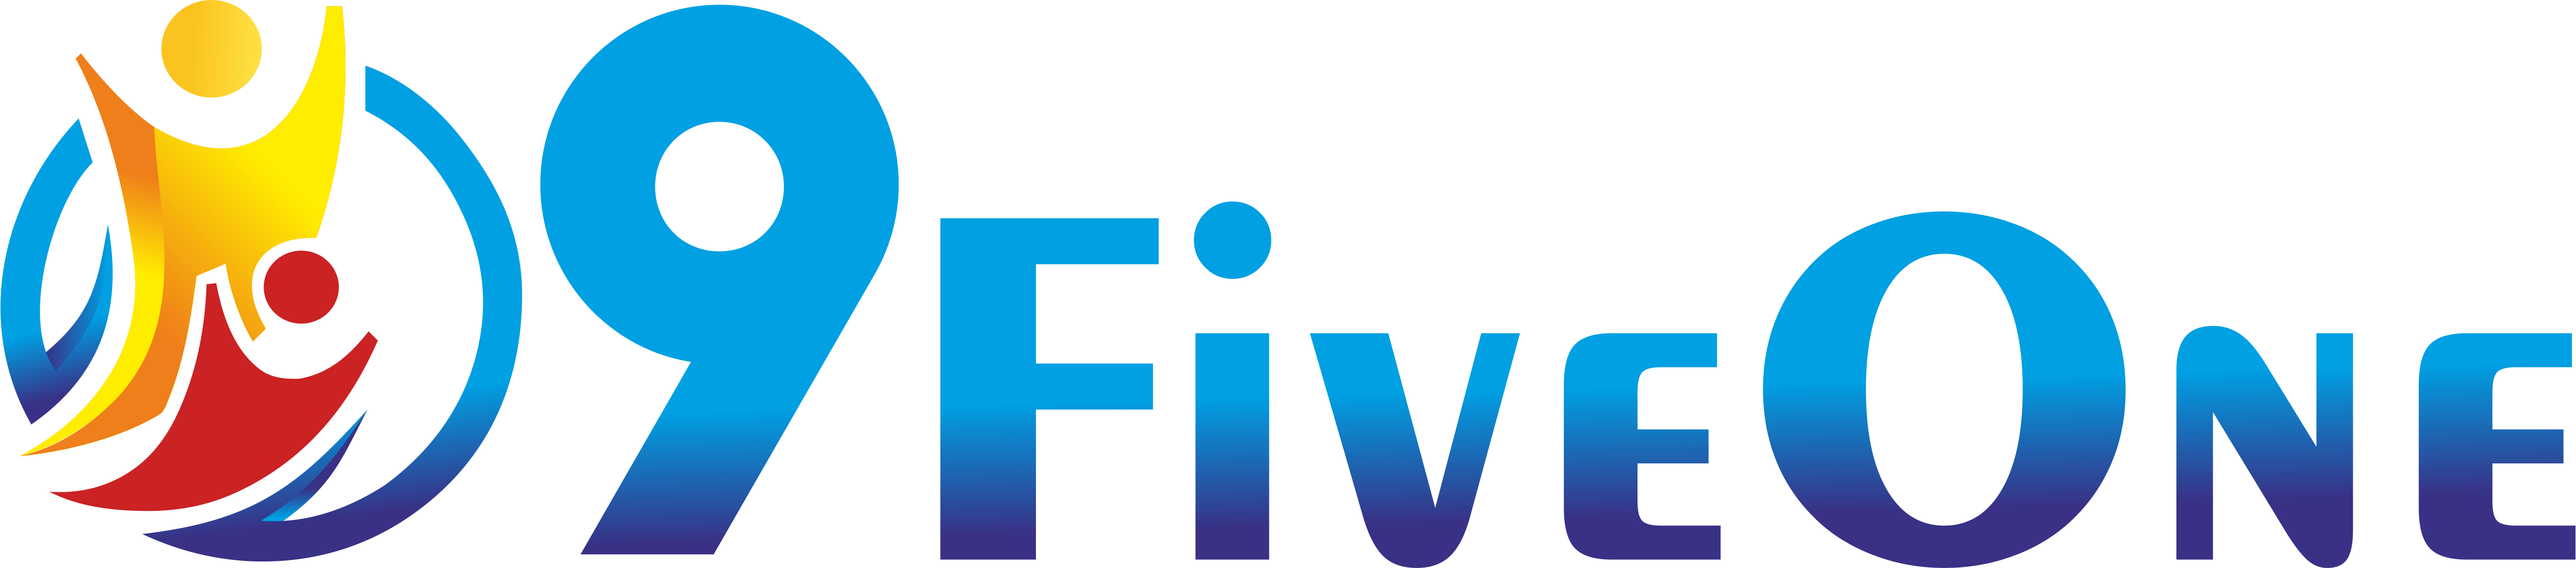 9FIVEONE FULL BUSINESS PLAN